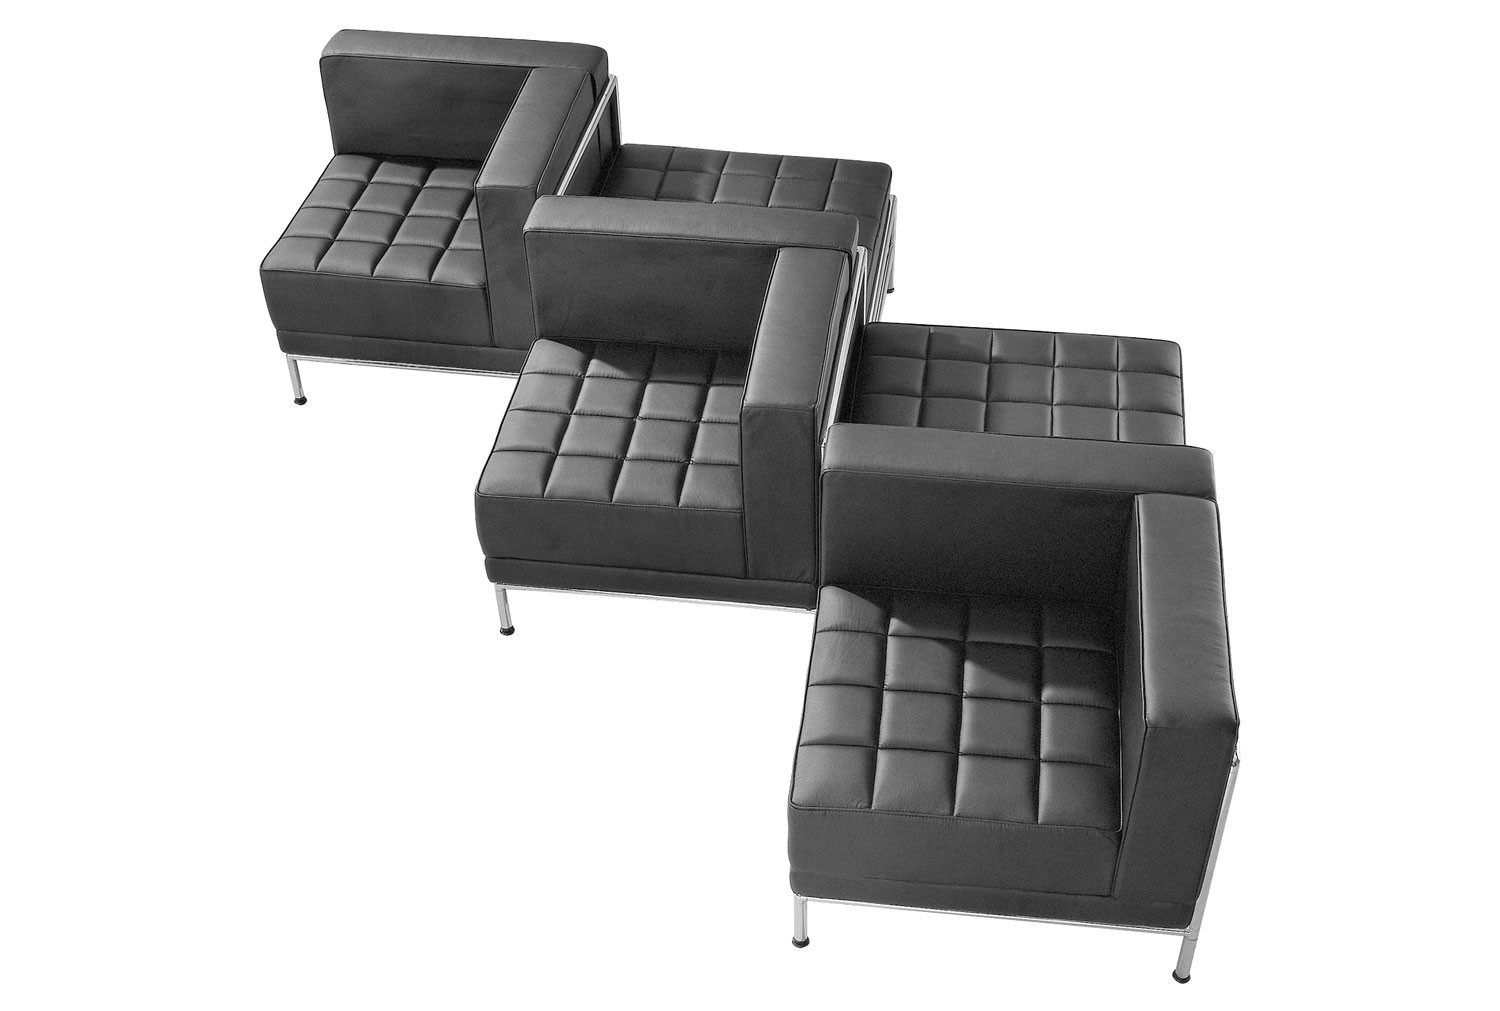 Aden Modular Reception Seating